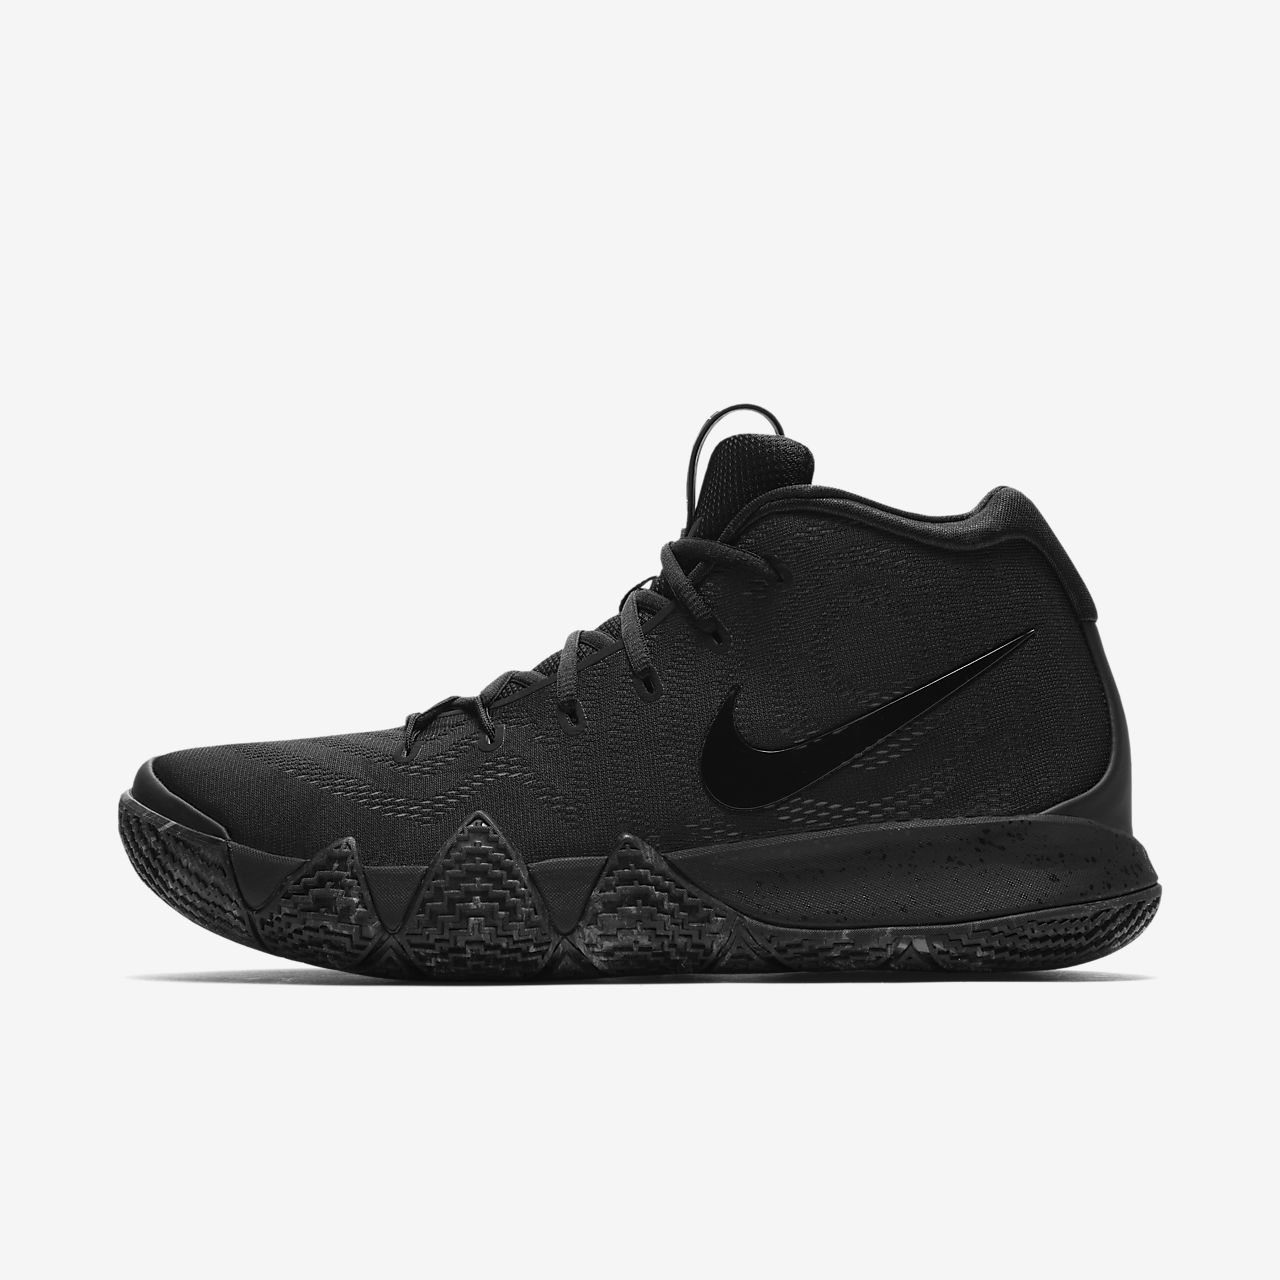 best cheap d8bb7 eef27 Low Resolution Kyrie 4 Basketball Shoe Kyrie 4 Basketball Shoe